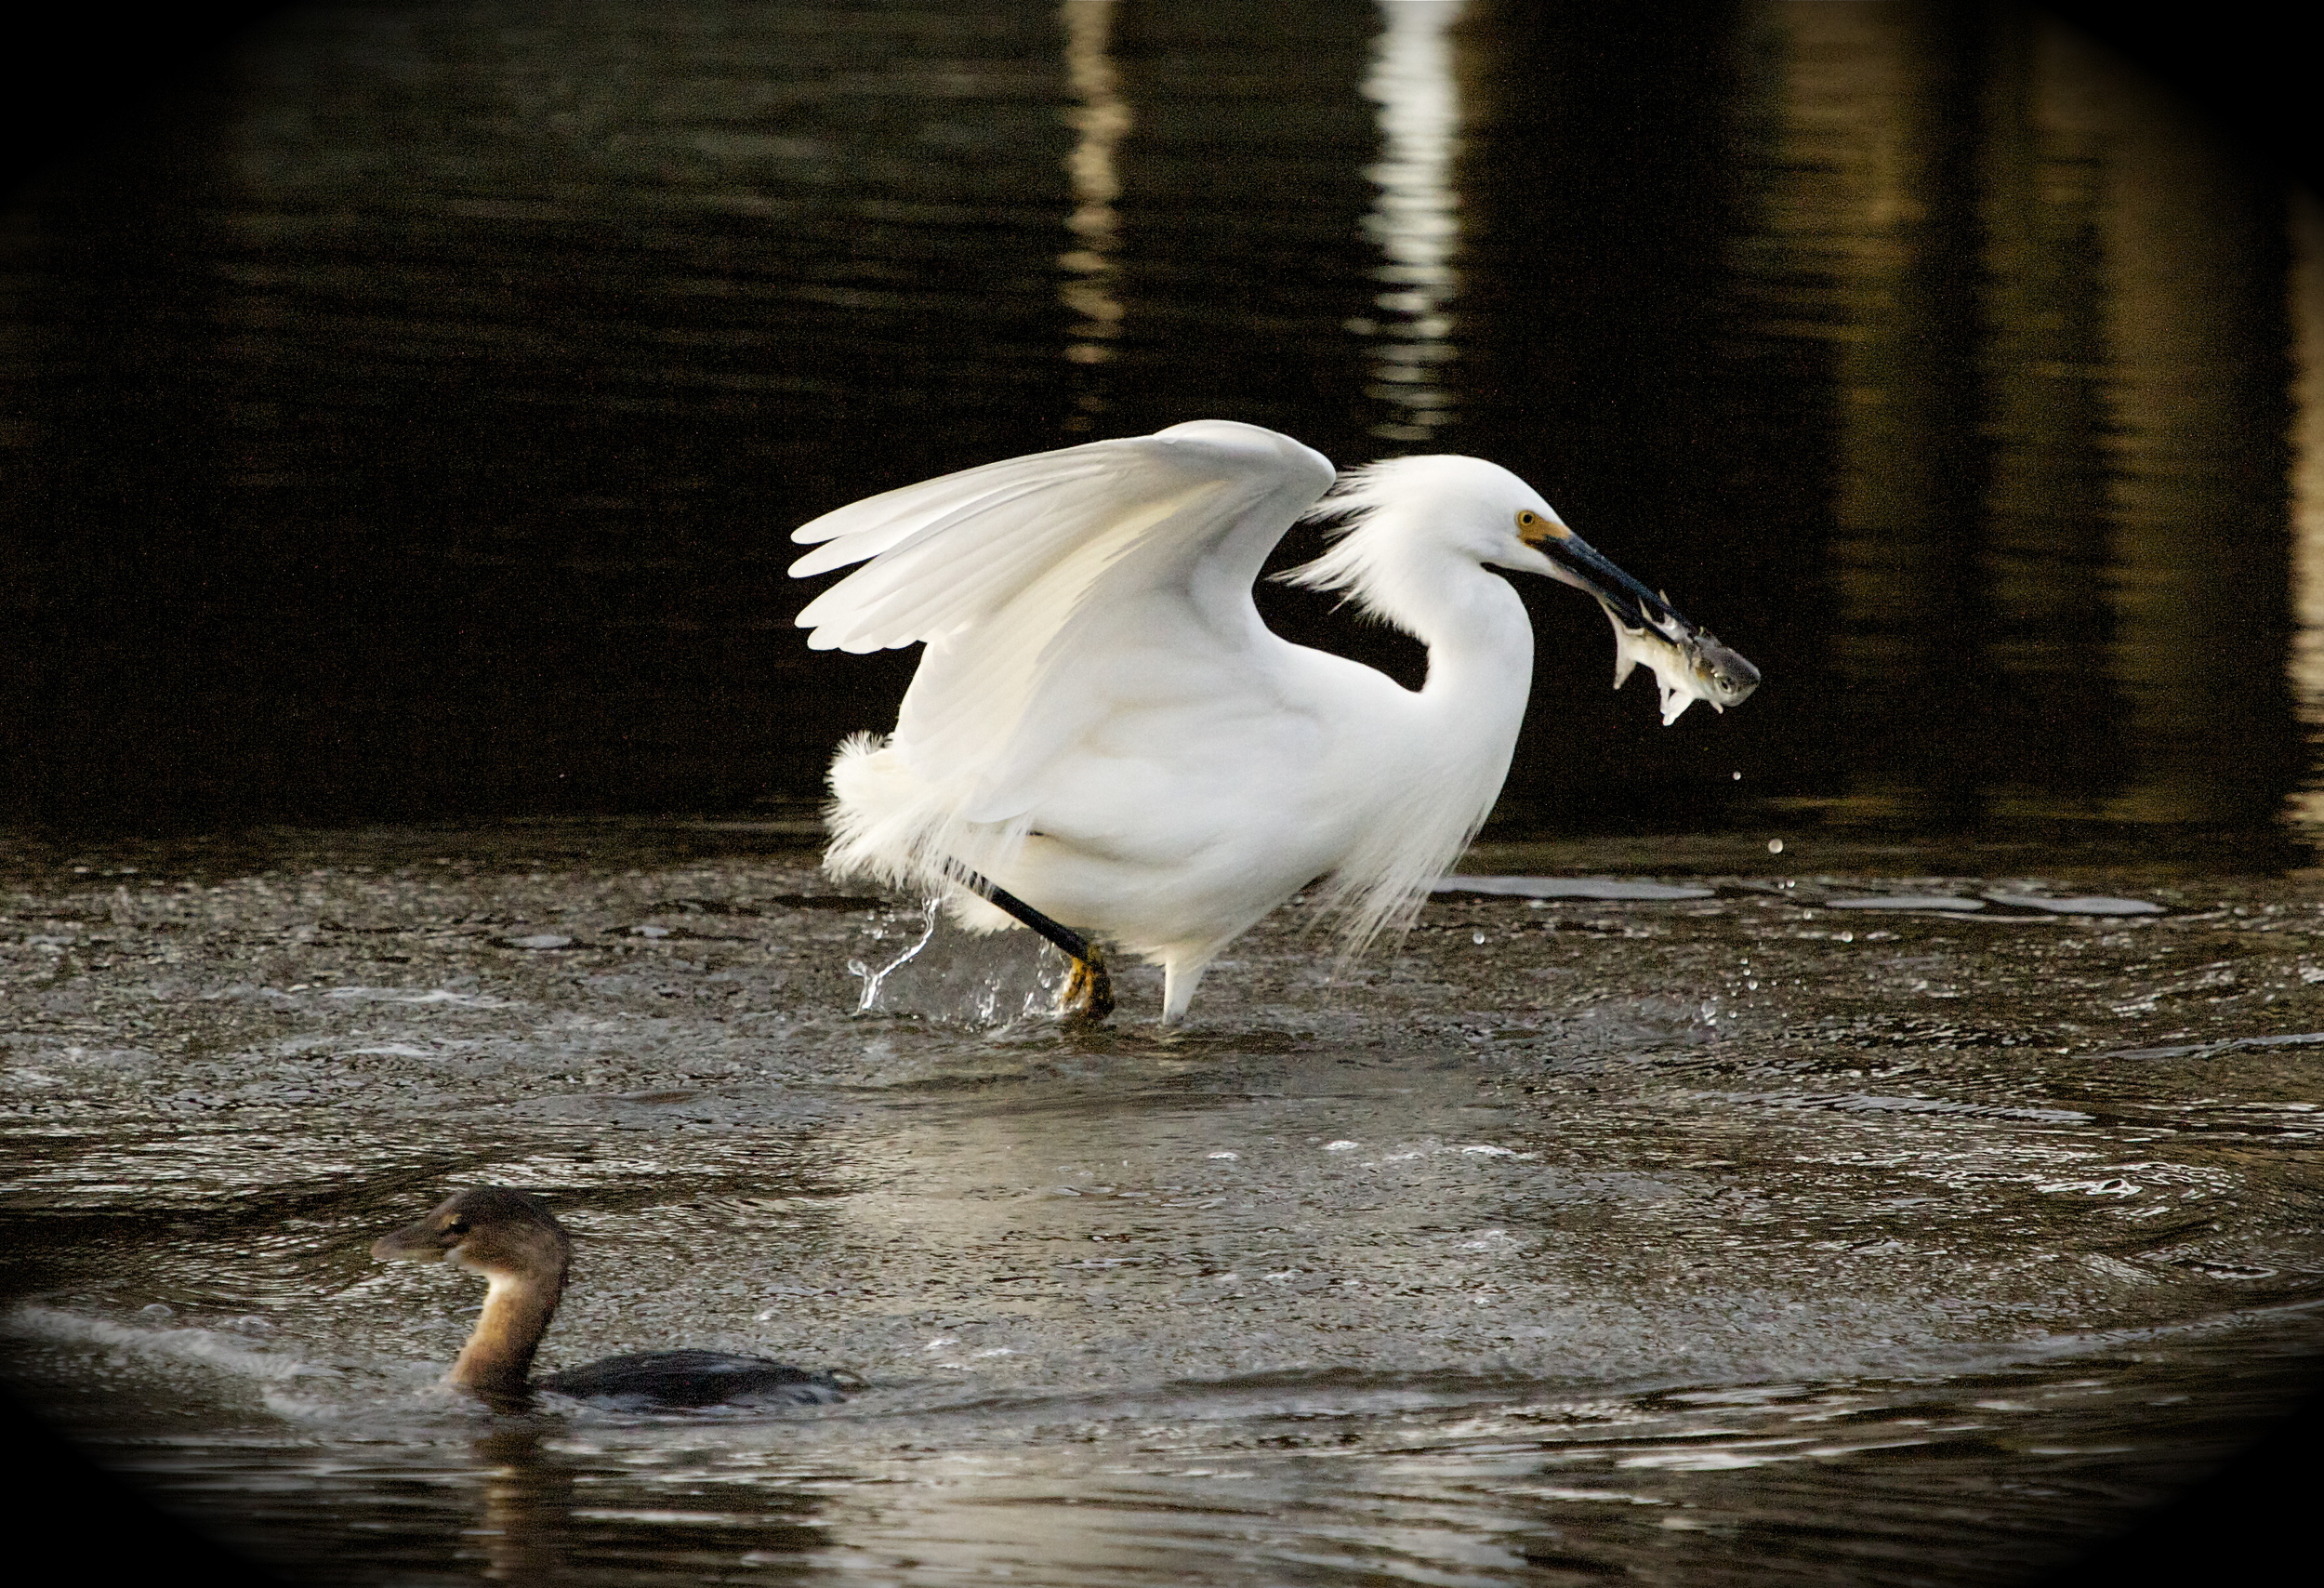 Snowy Egret with catch while the Grebe goes hungry (for a moment)!